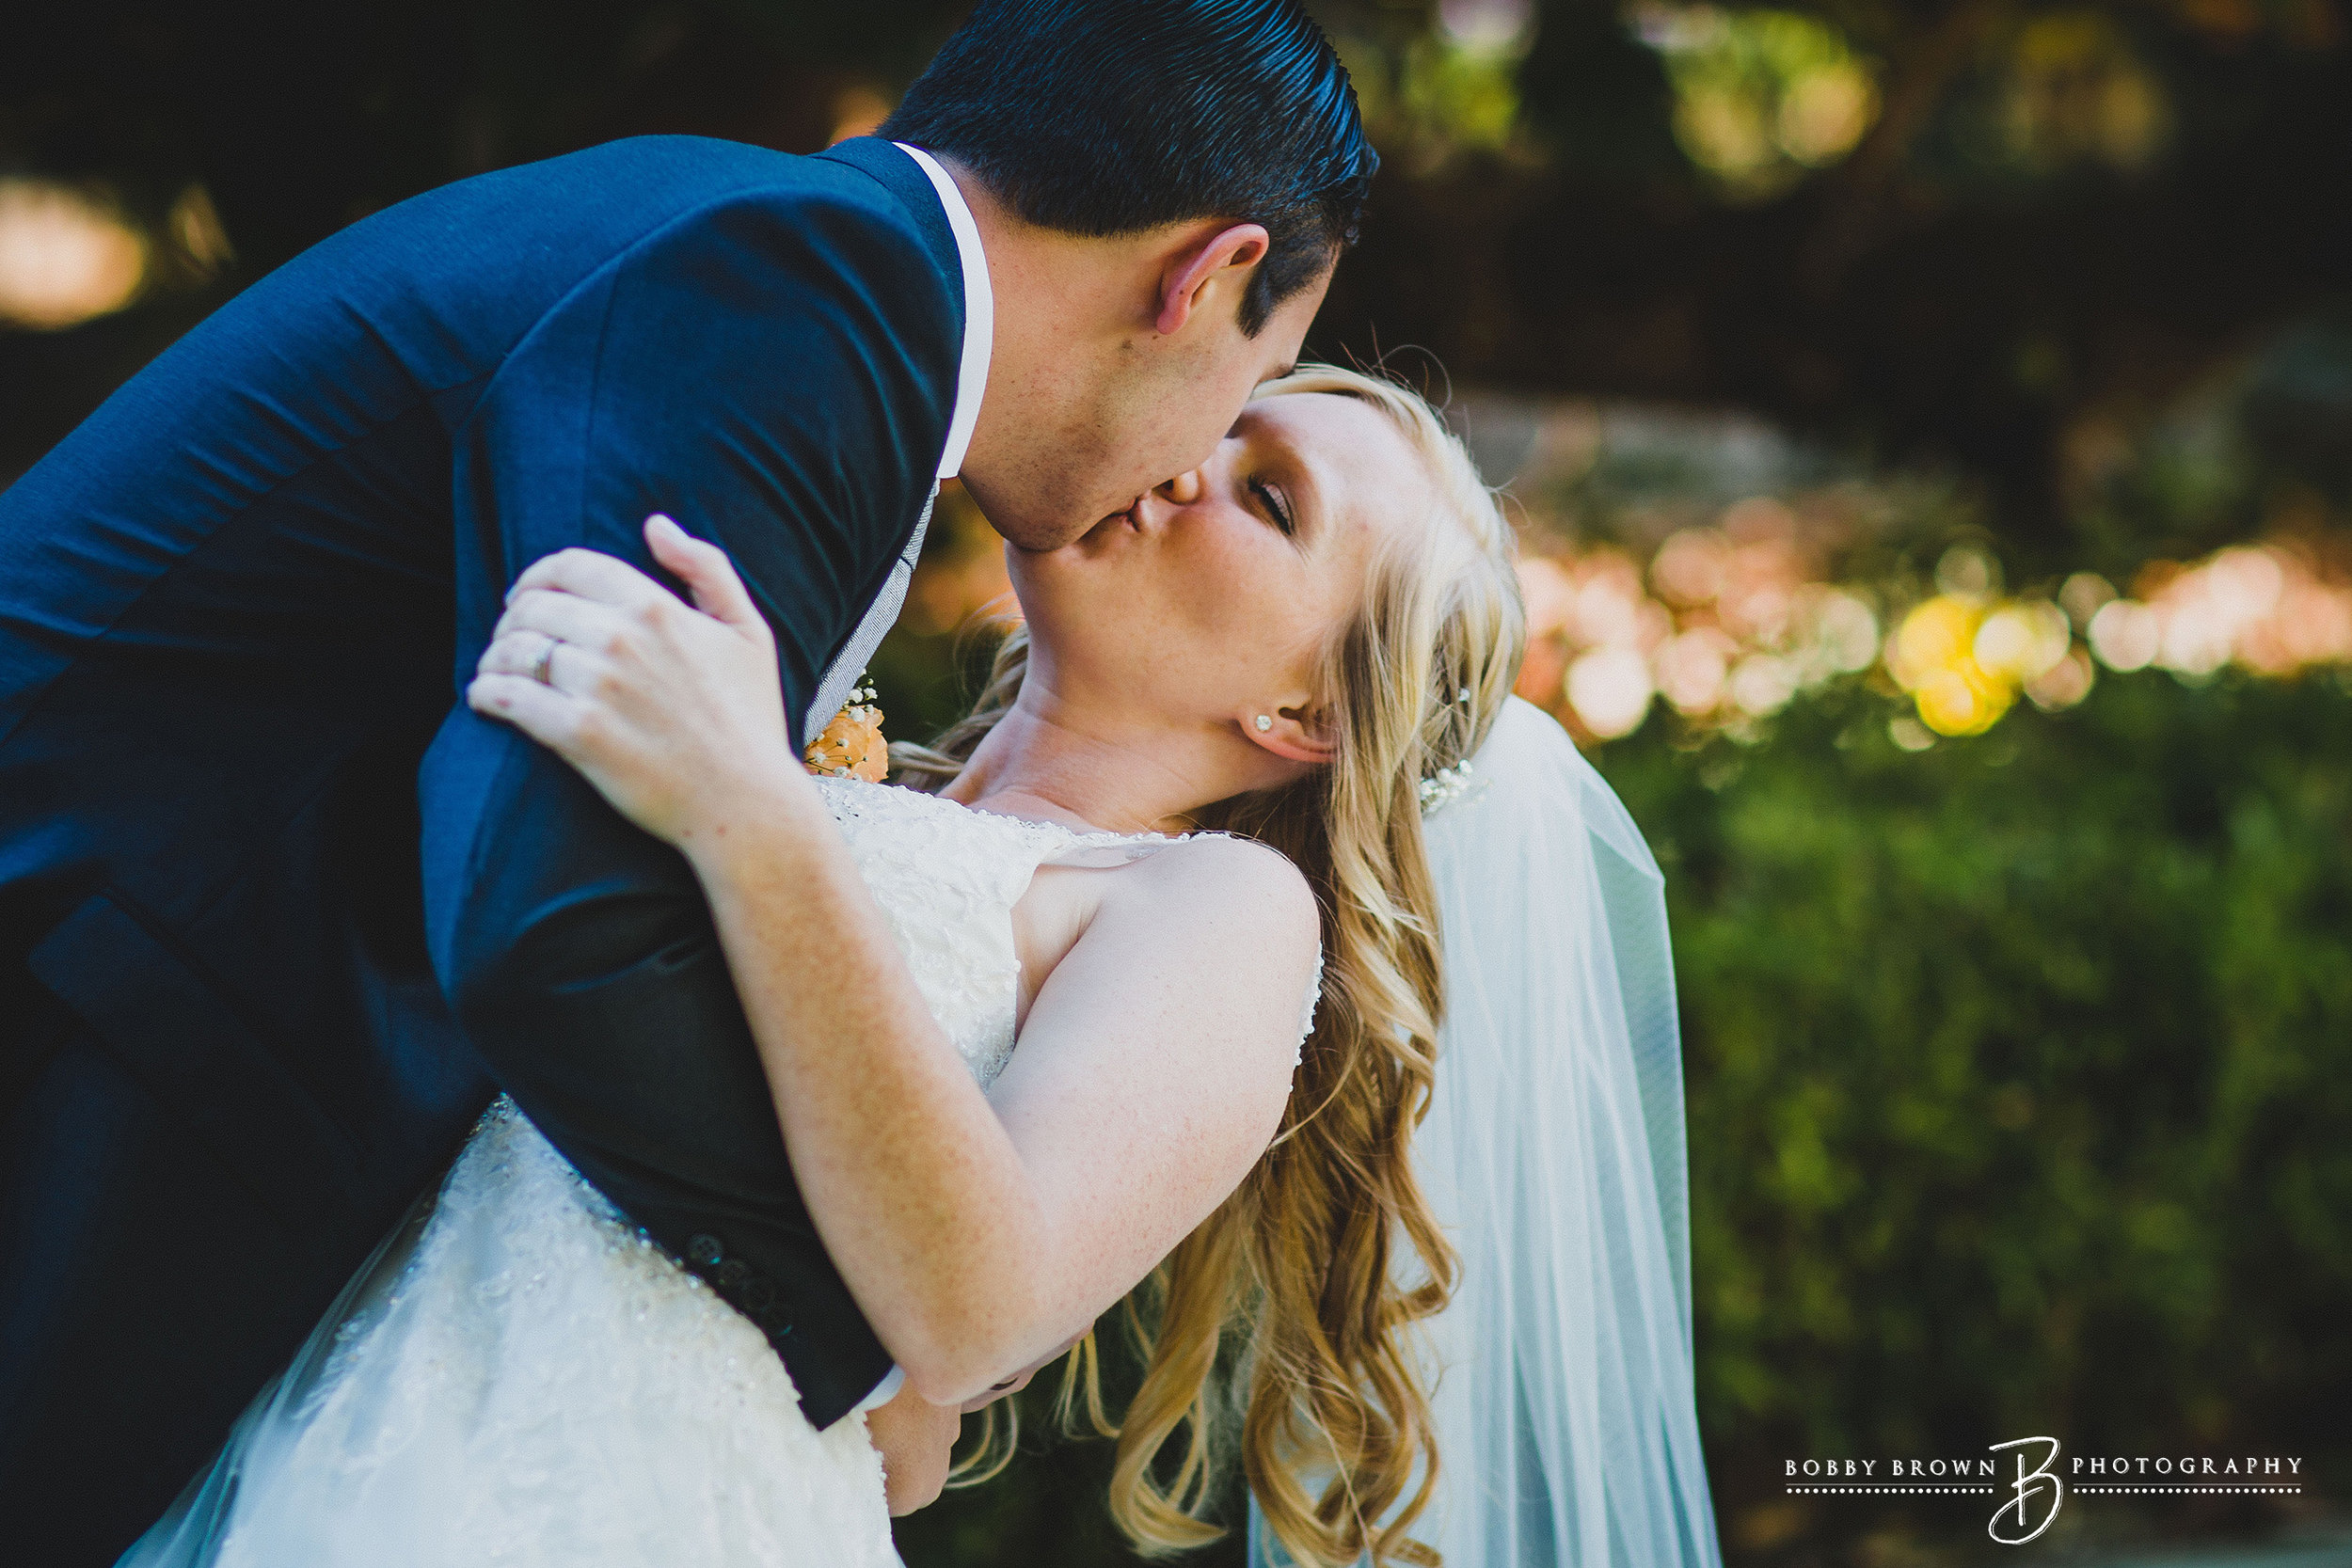 hugginswedding-696.jpg